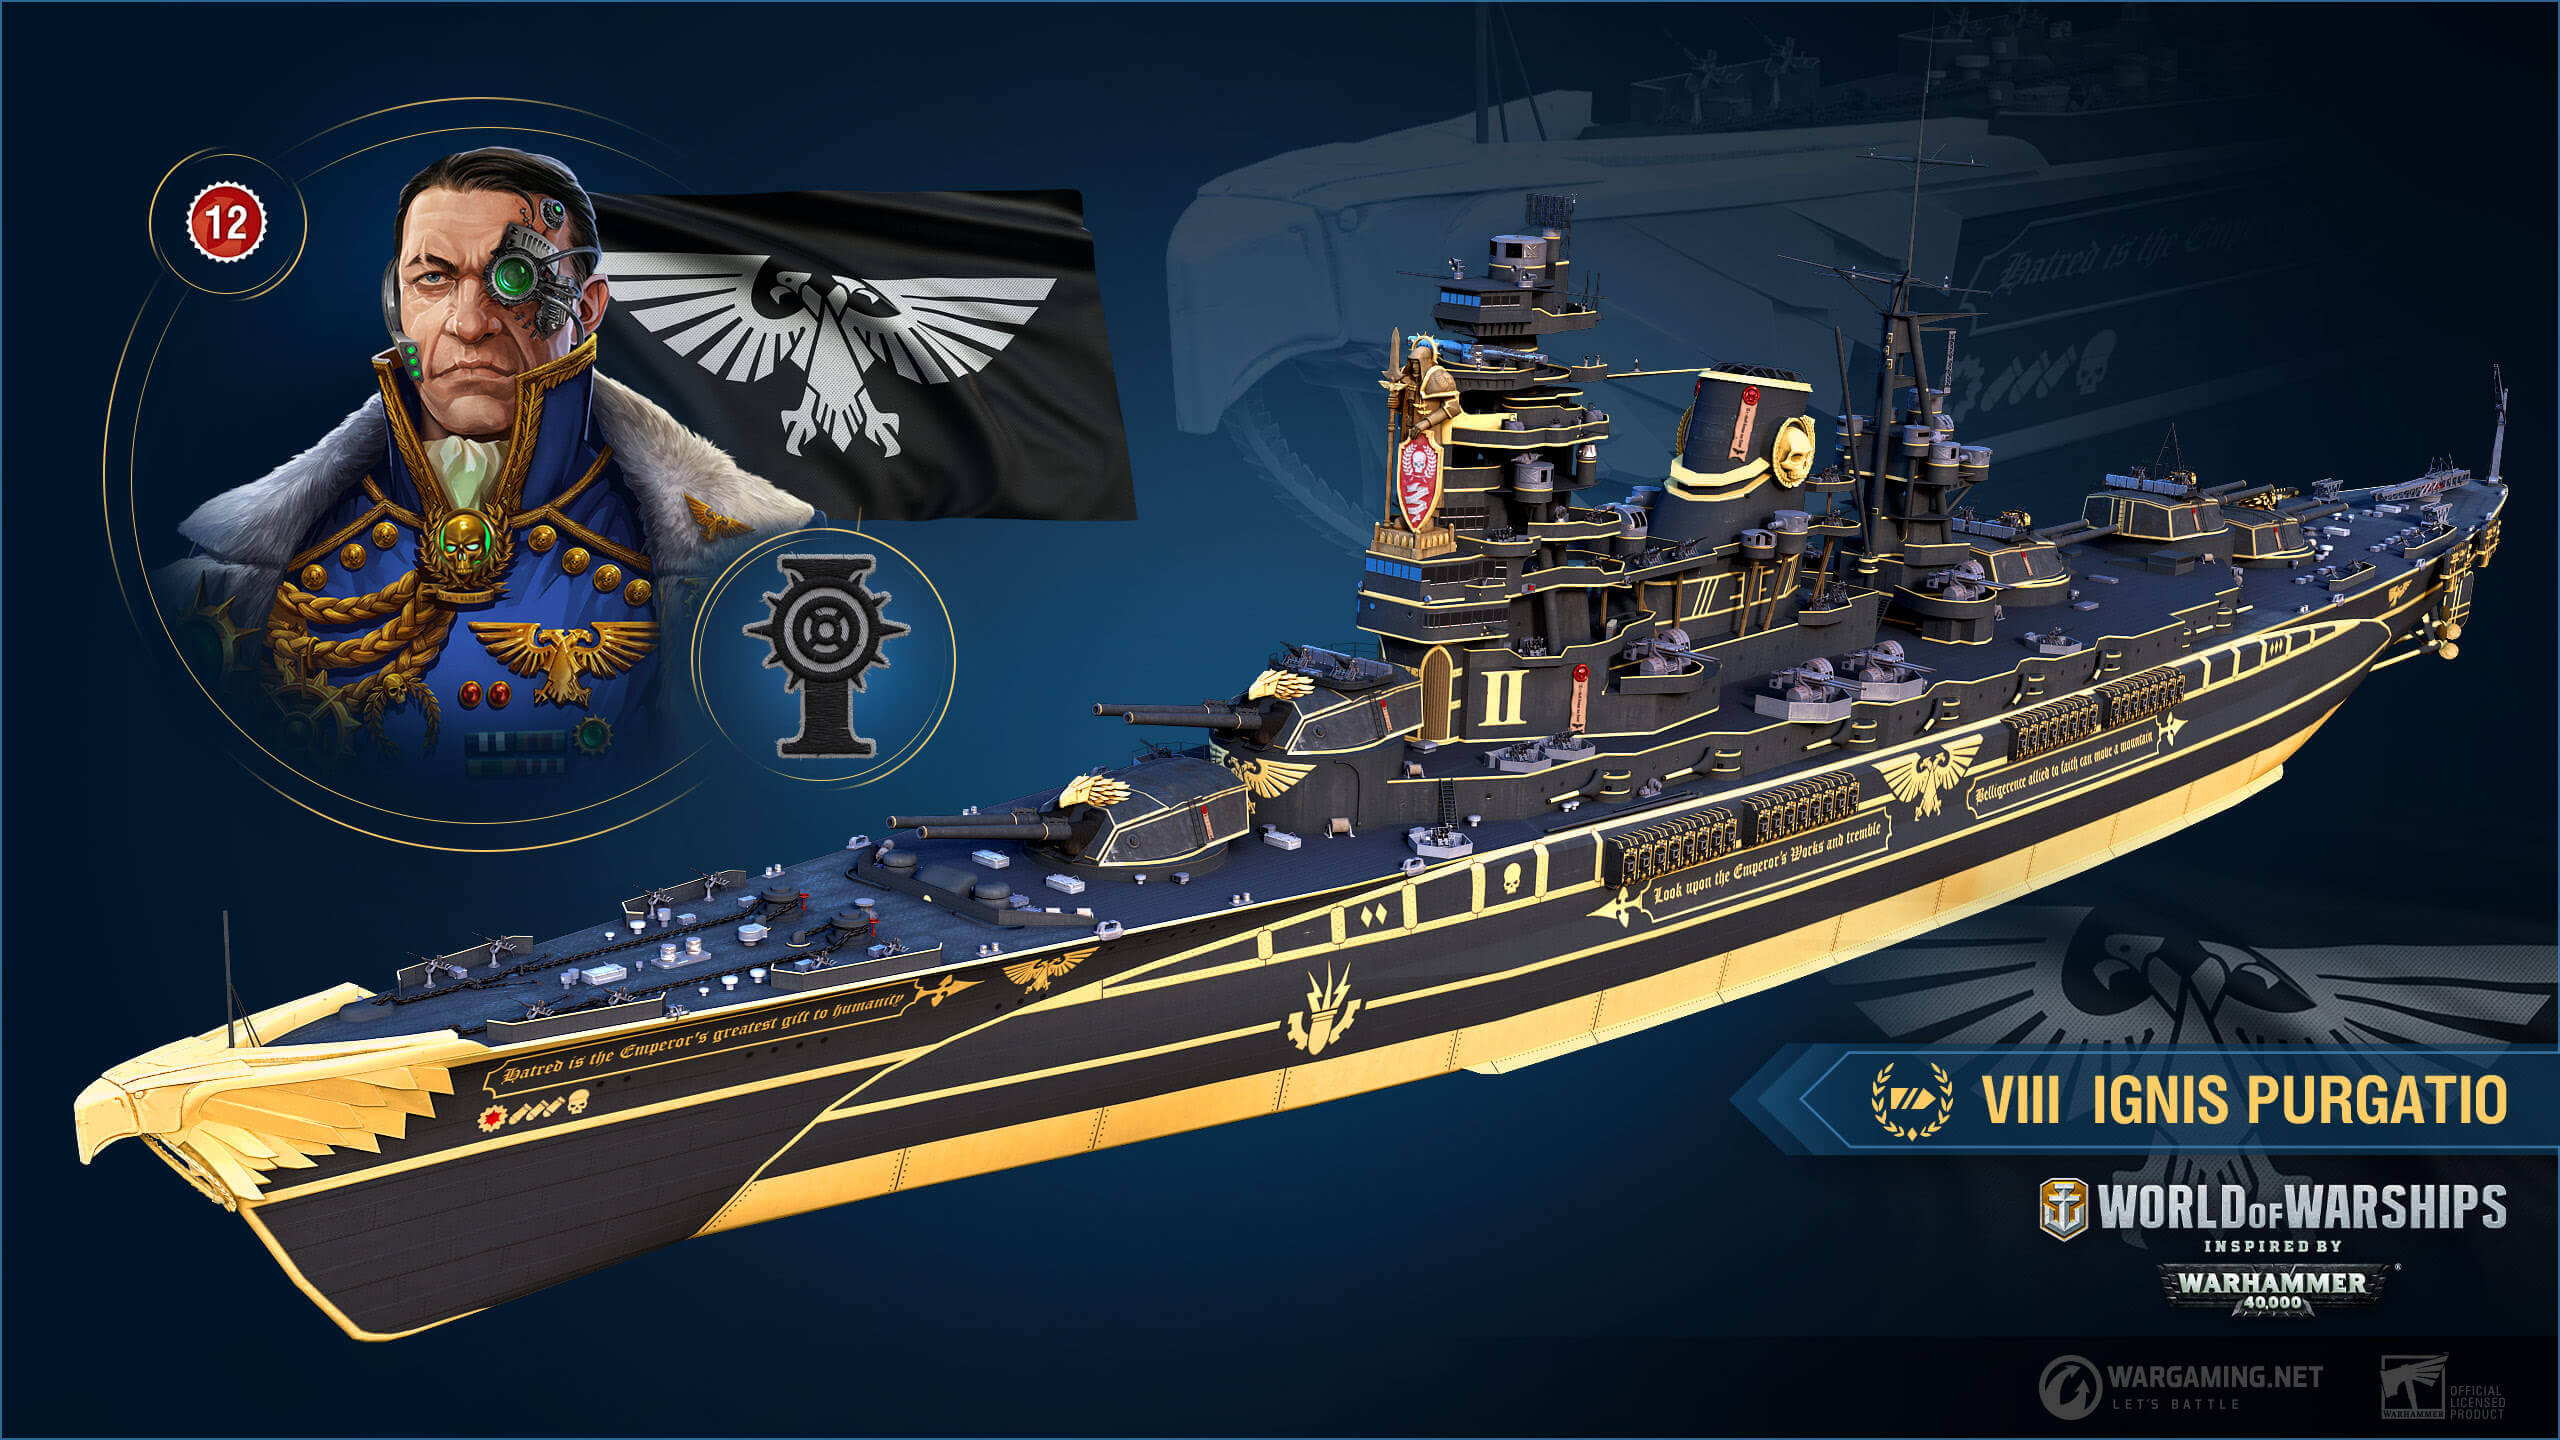 In arrivo l'invasione di Warhammer 40.000 nel mondo di World of Warships thumbnail